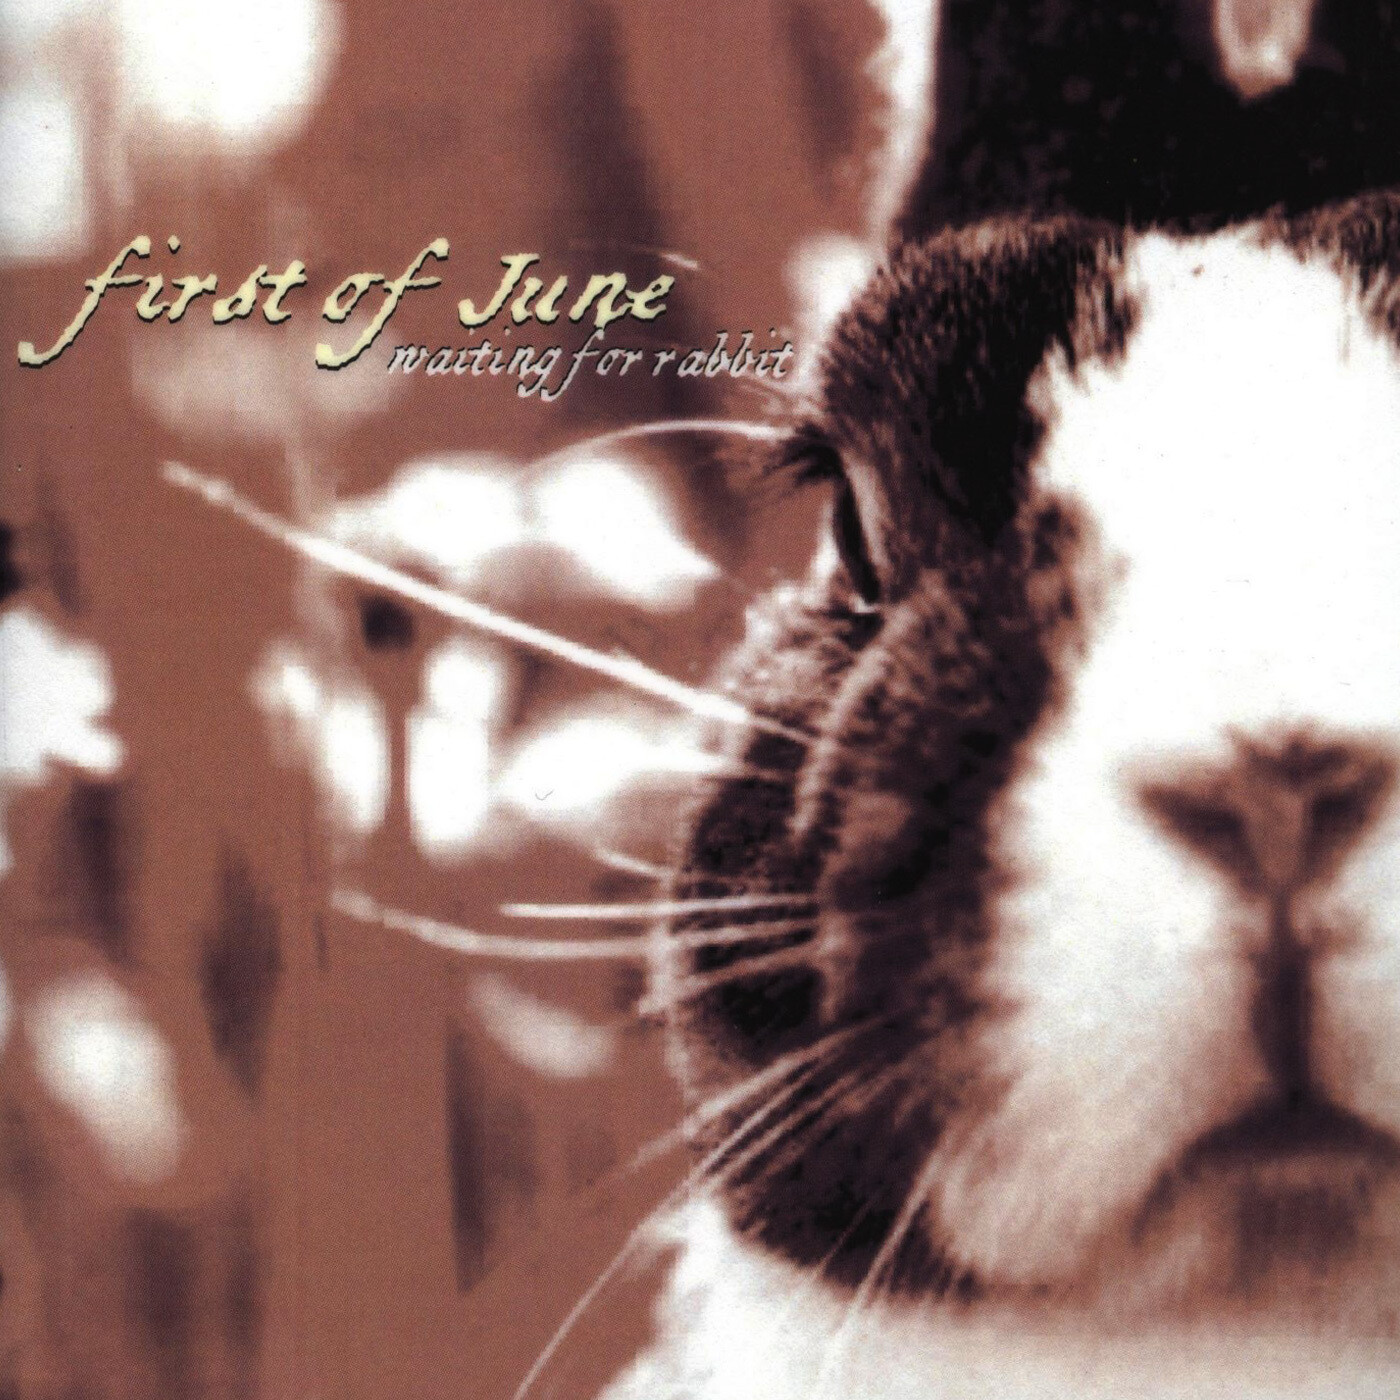 First of June - Waiting For Rabbit (MP3 format)